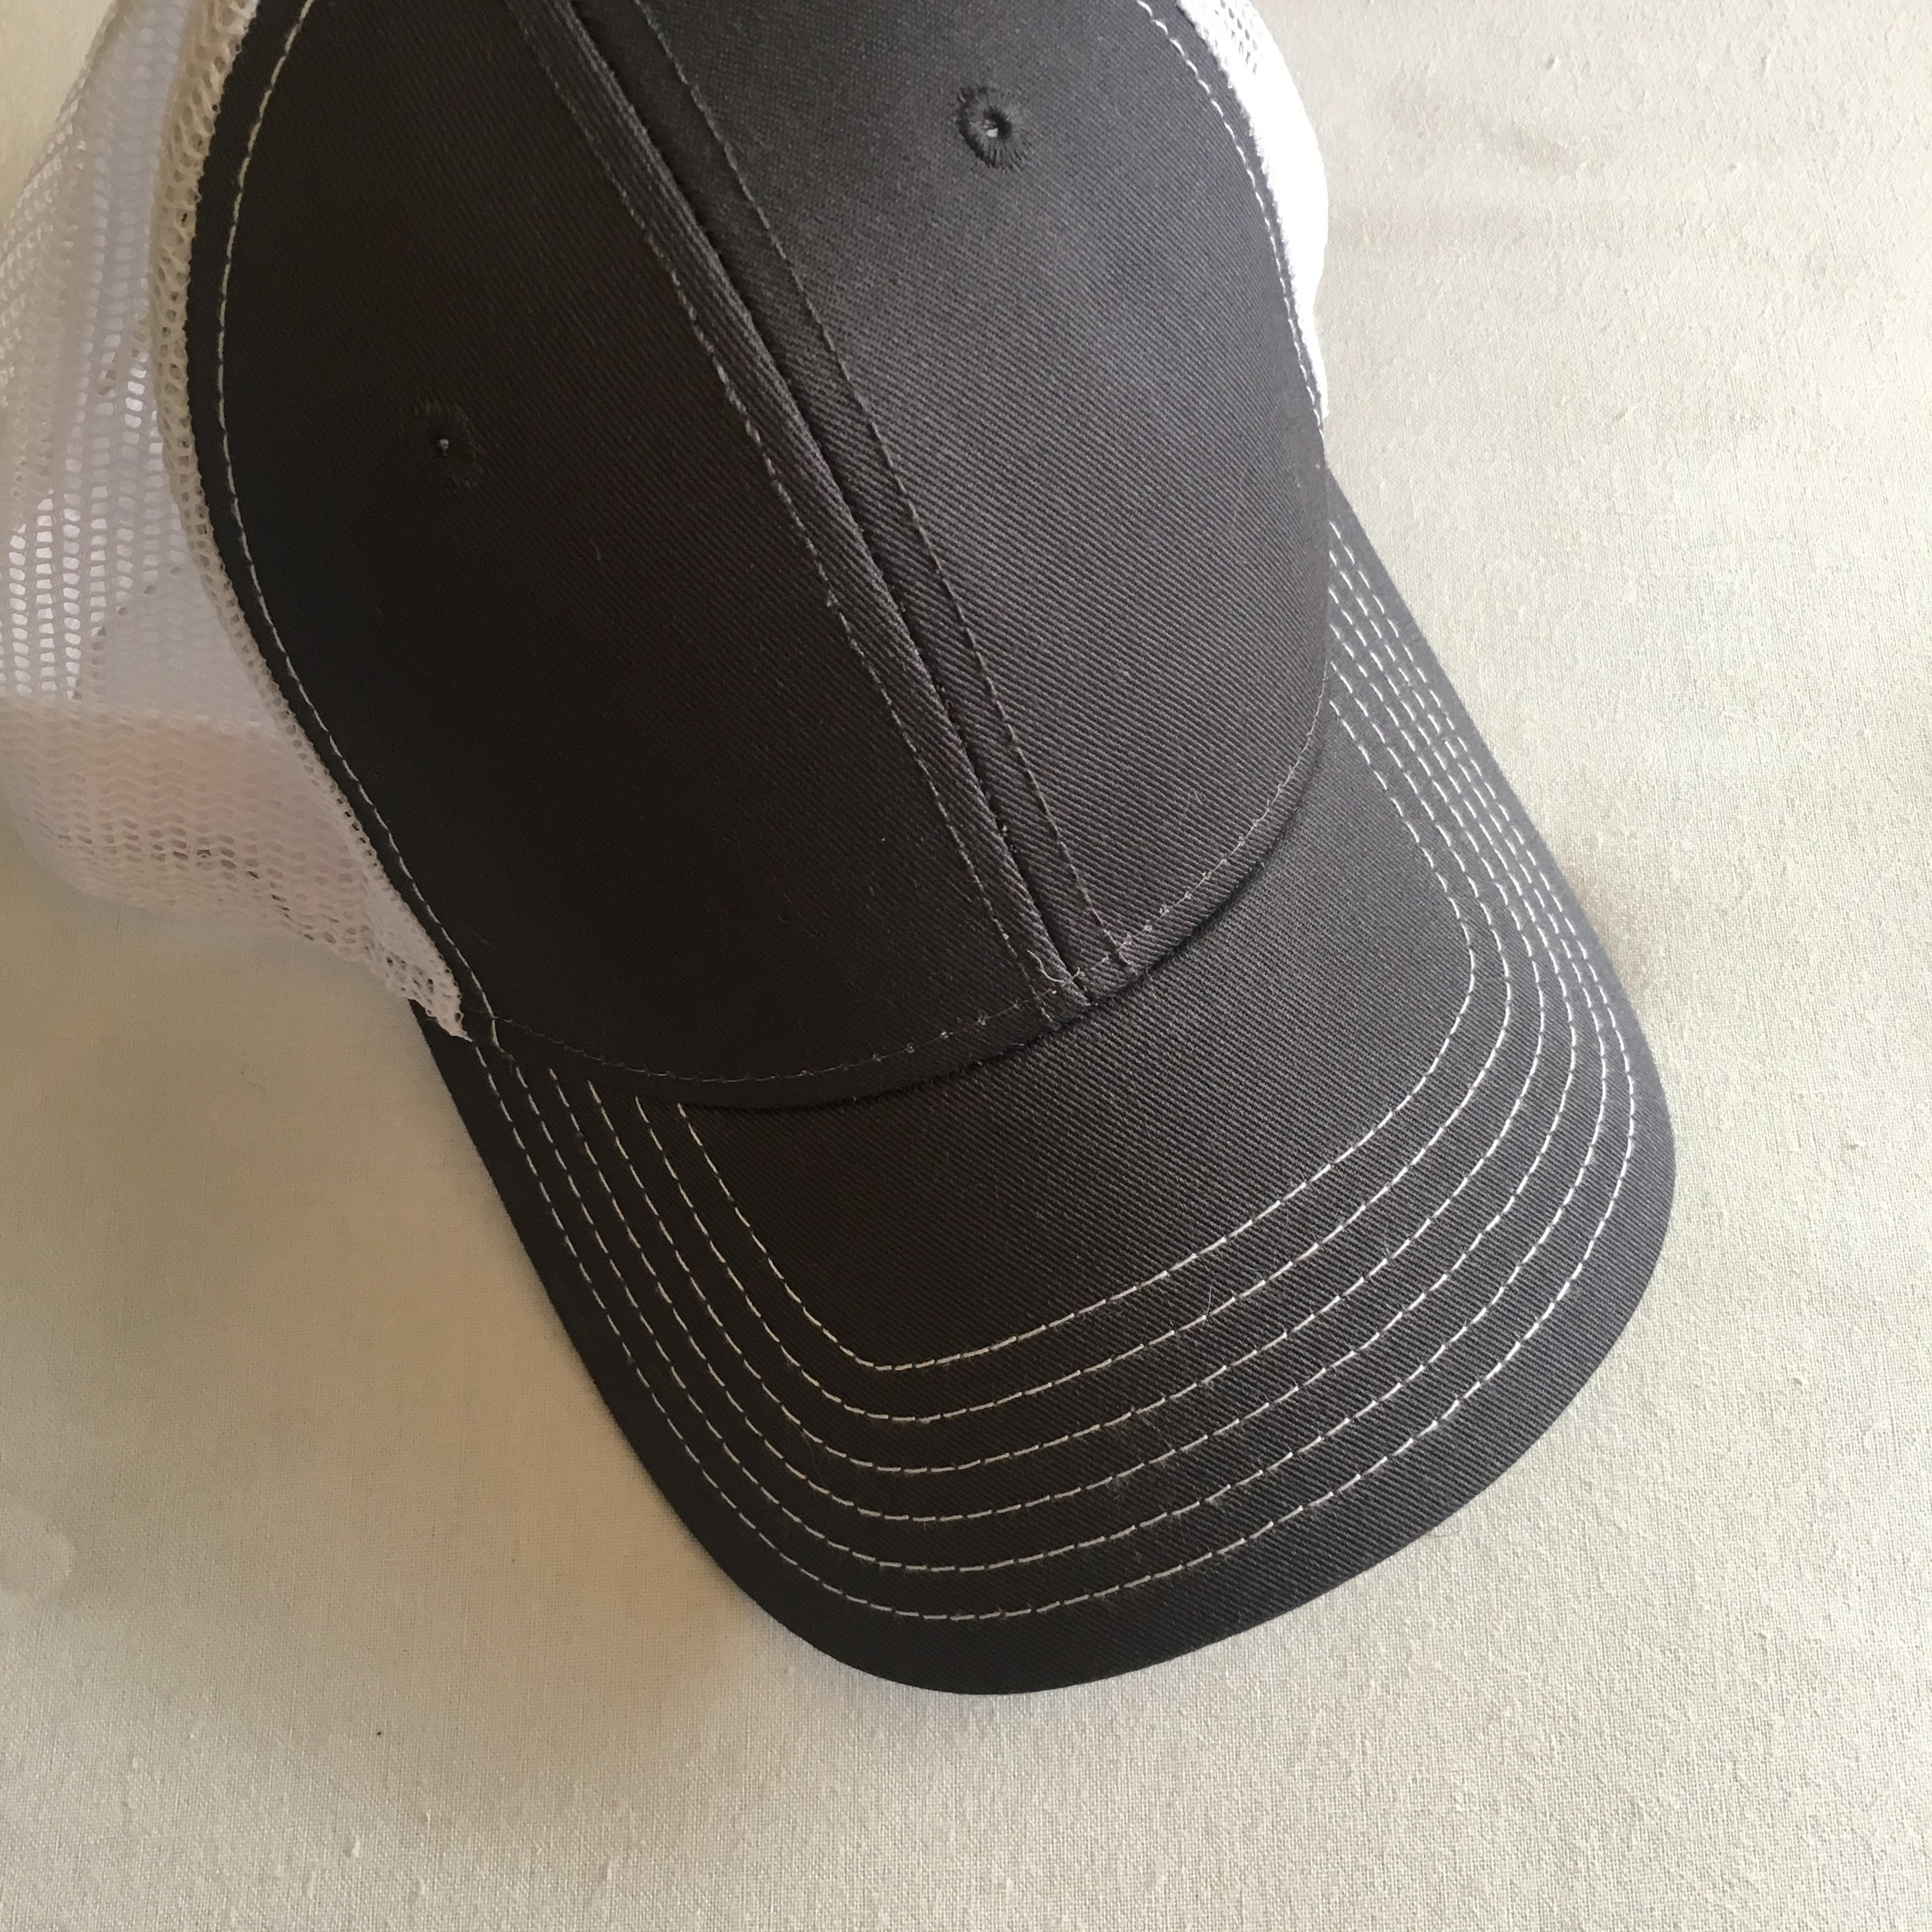 Purchase a blank baseball cap, fedora, sombrero, or any other desired style. We ordered ours online from Amazon.